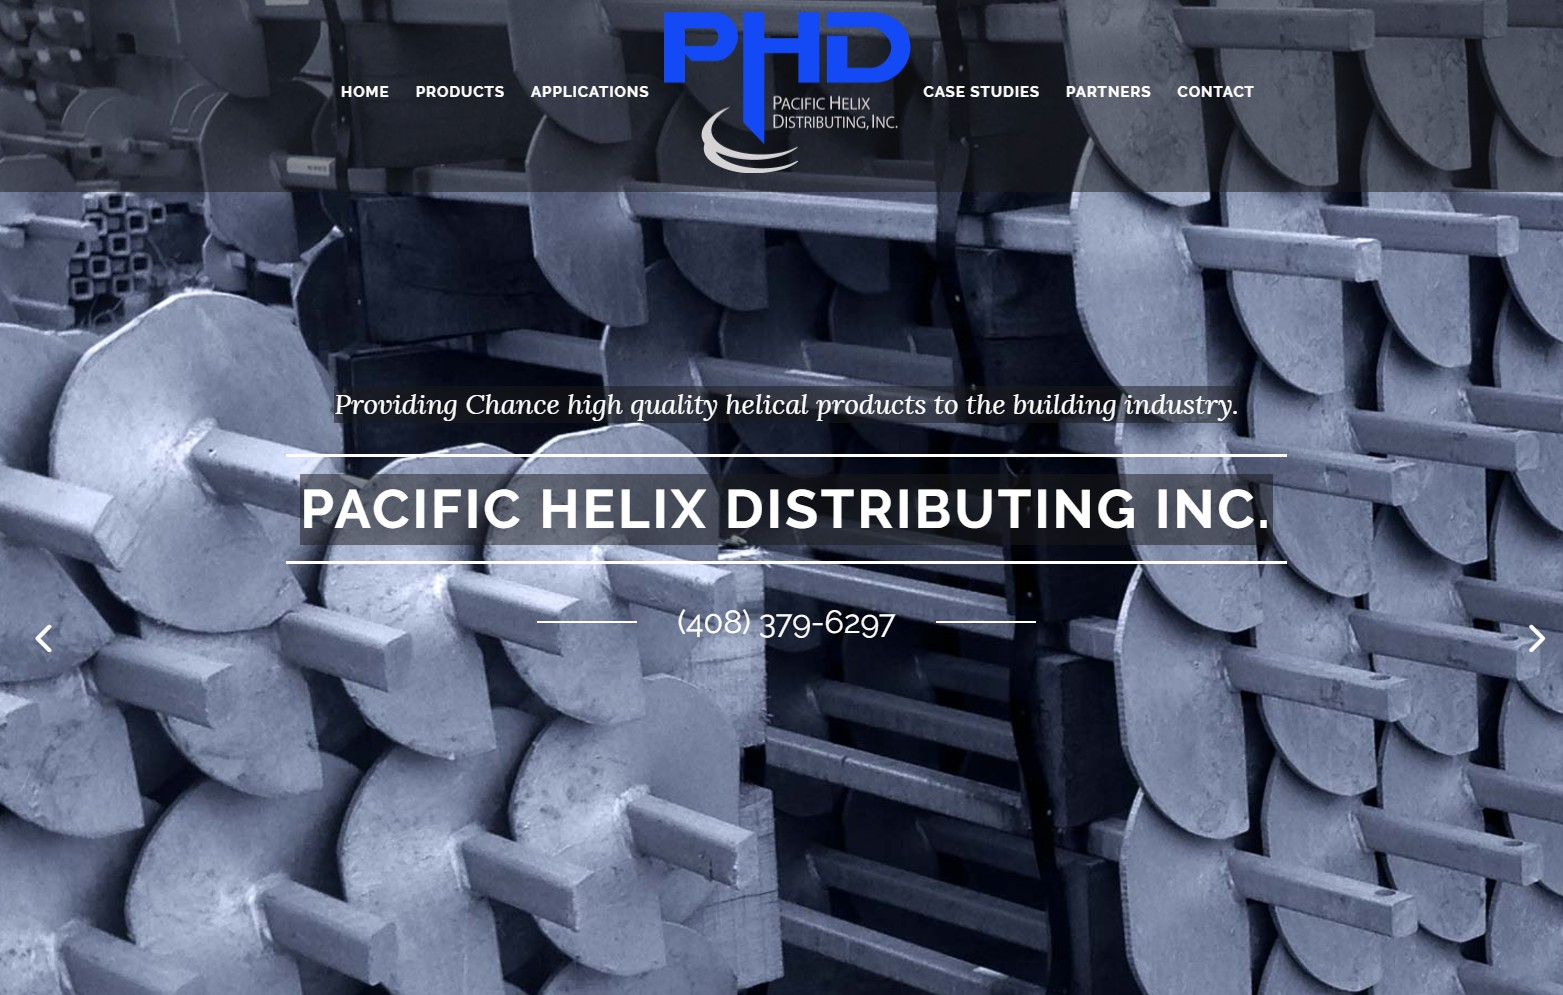 Pacific Helix Distributing